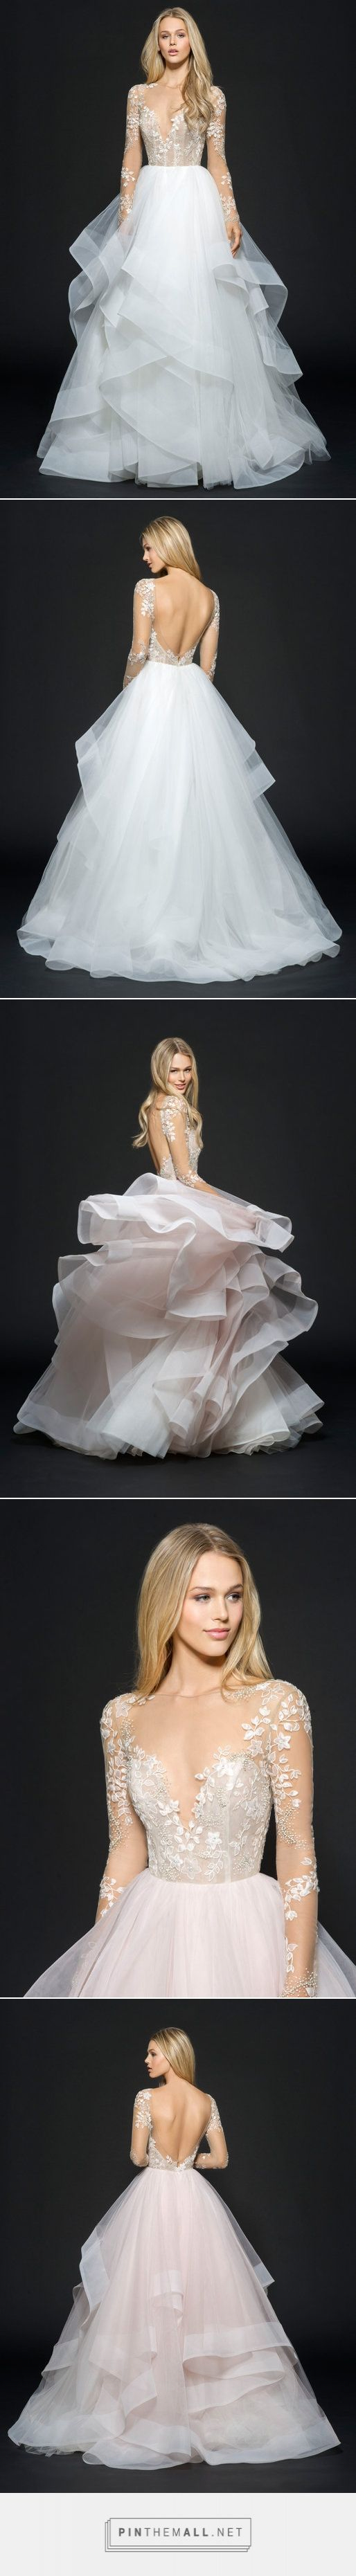 Bridal Gowns and Wedding Dresses by JLM Couture - Style 6654 Lorelei Hayley Paige Fall 2016 - created via https://pinthemall.net